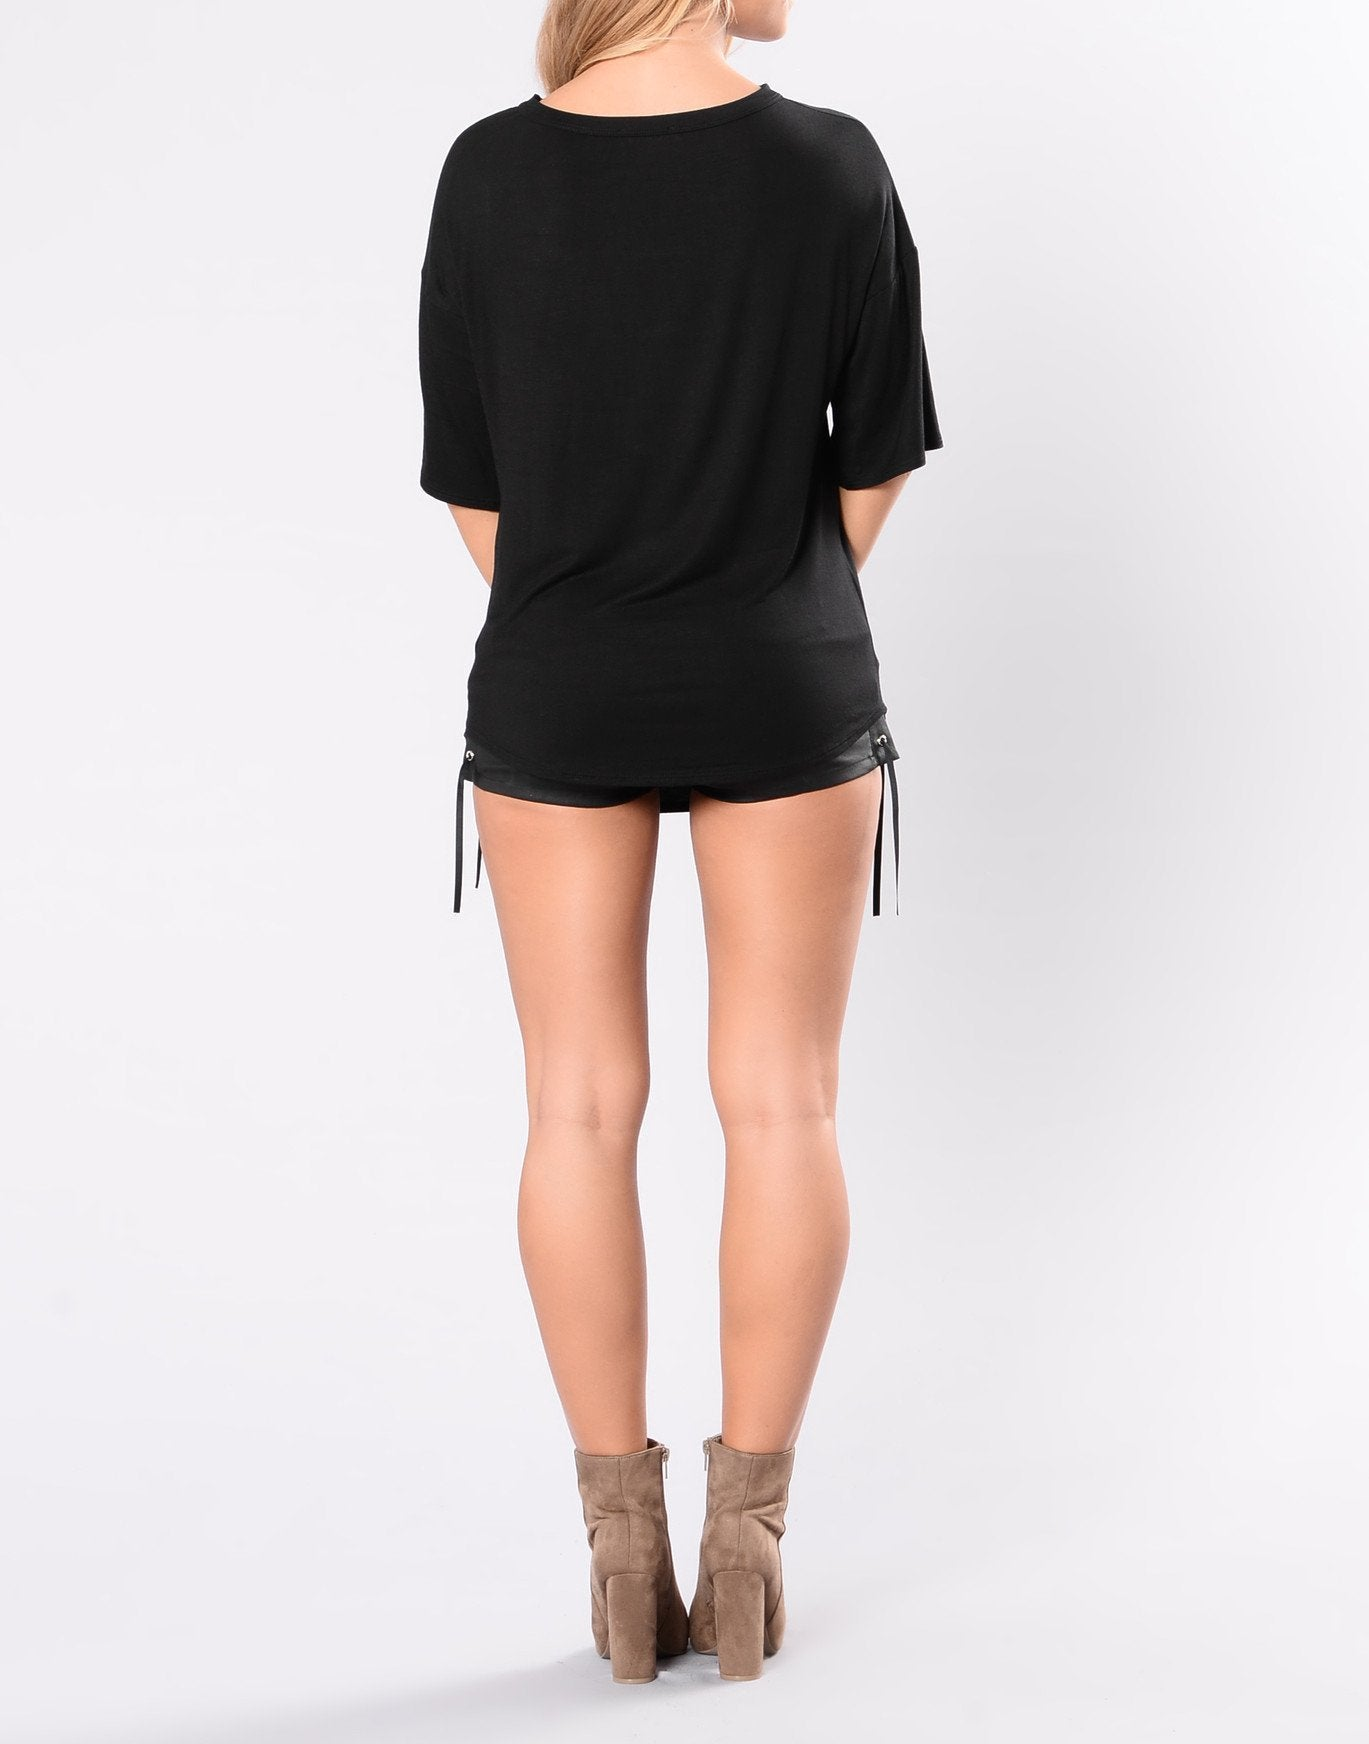 Wild and Free Graphic V Cut Tee in Black